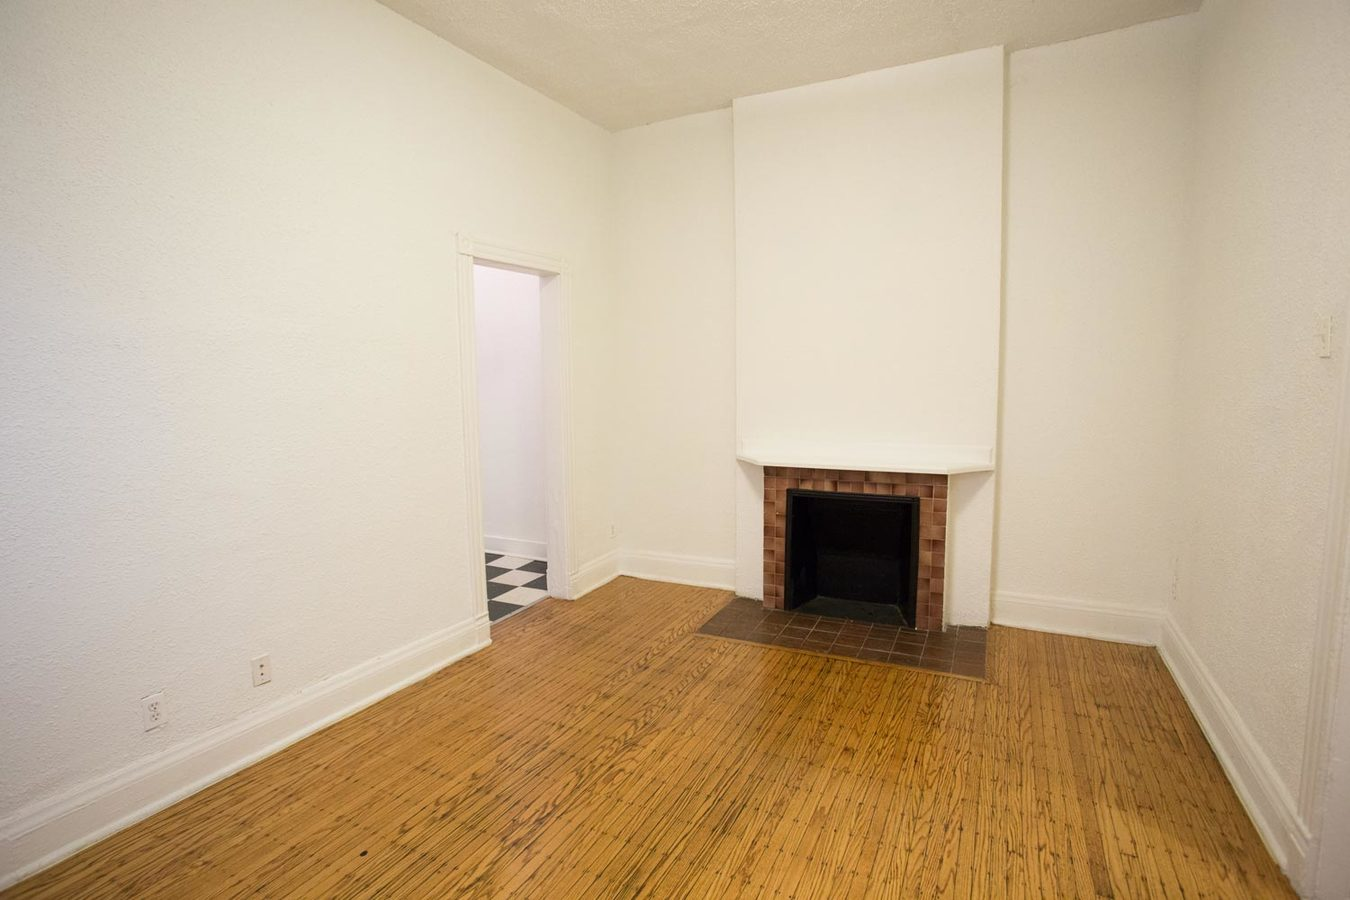 3 Bedrooms 1 Bathroom Apartment for rent at The Pepperland in Chicago, IL